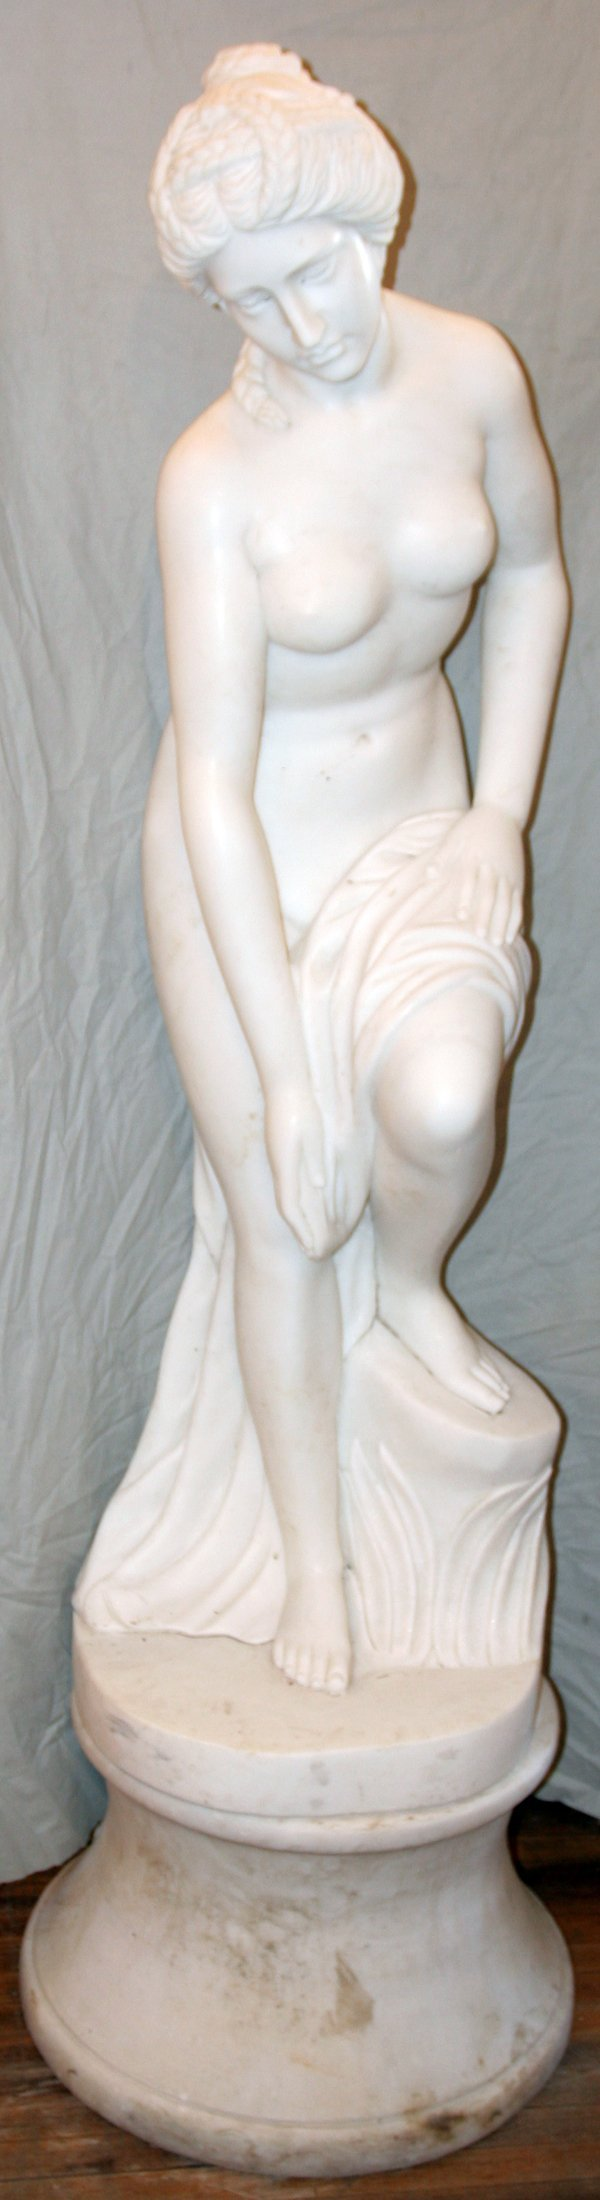 050001: MARBLE NEOCLASSICAL STYLE SCULPTURE & BASE